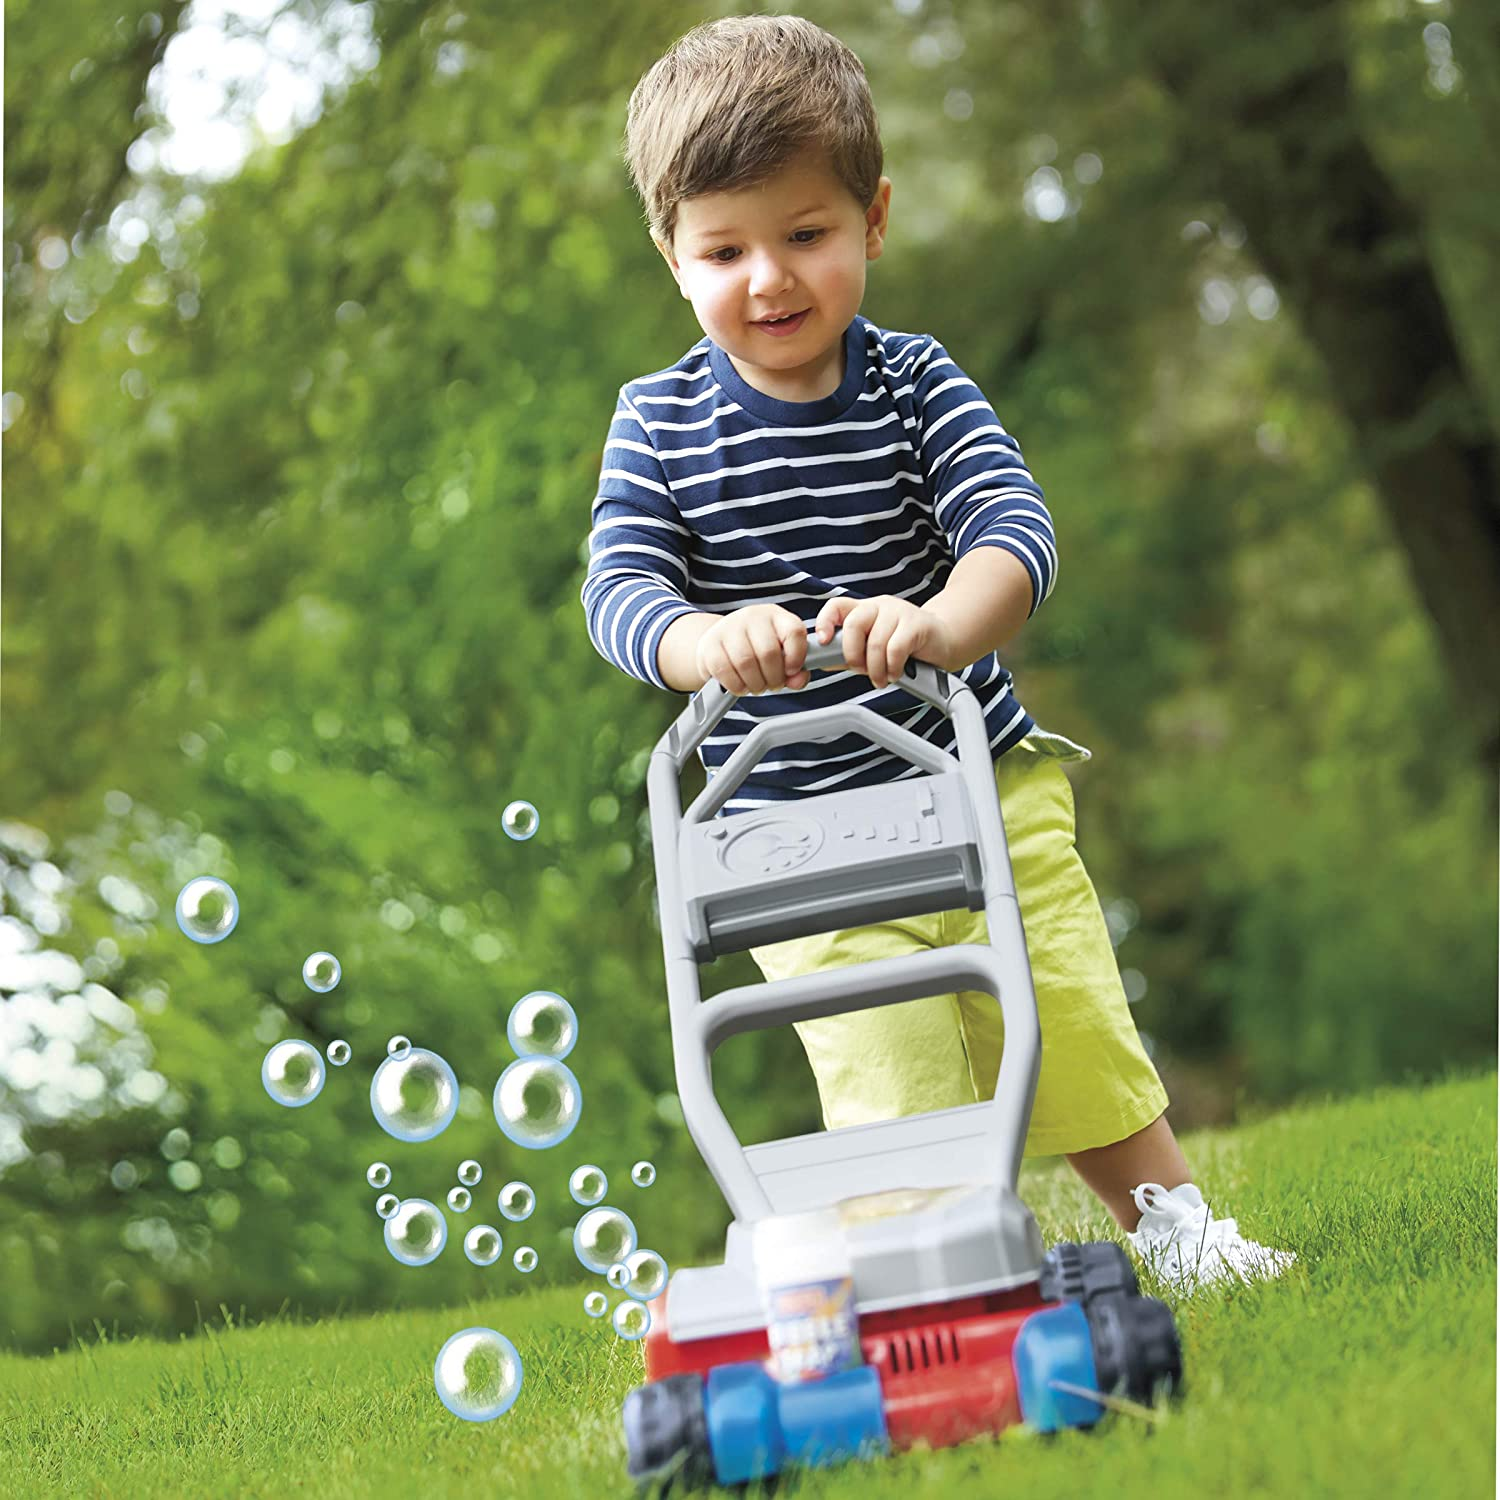 Top 7 Best Bubble Lawn Mower For Kids & Toddlers 2020 1